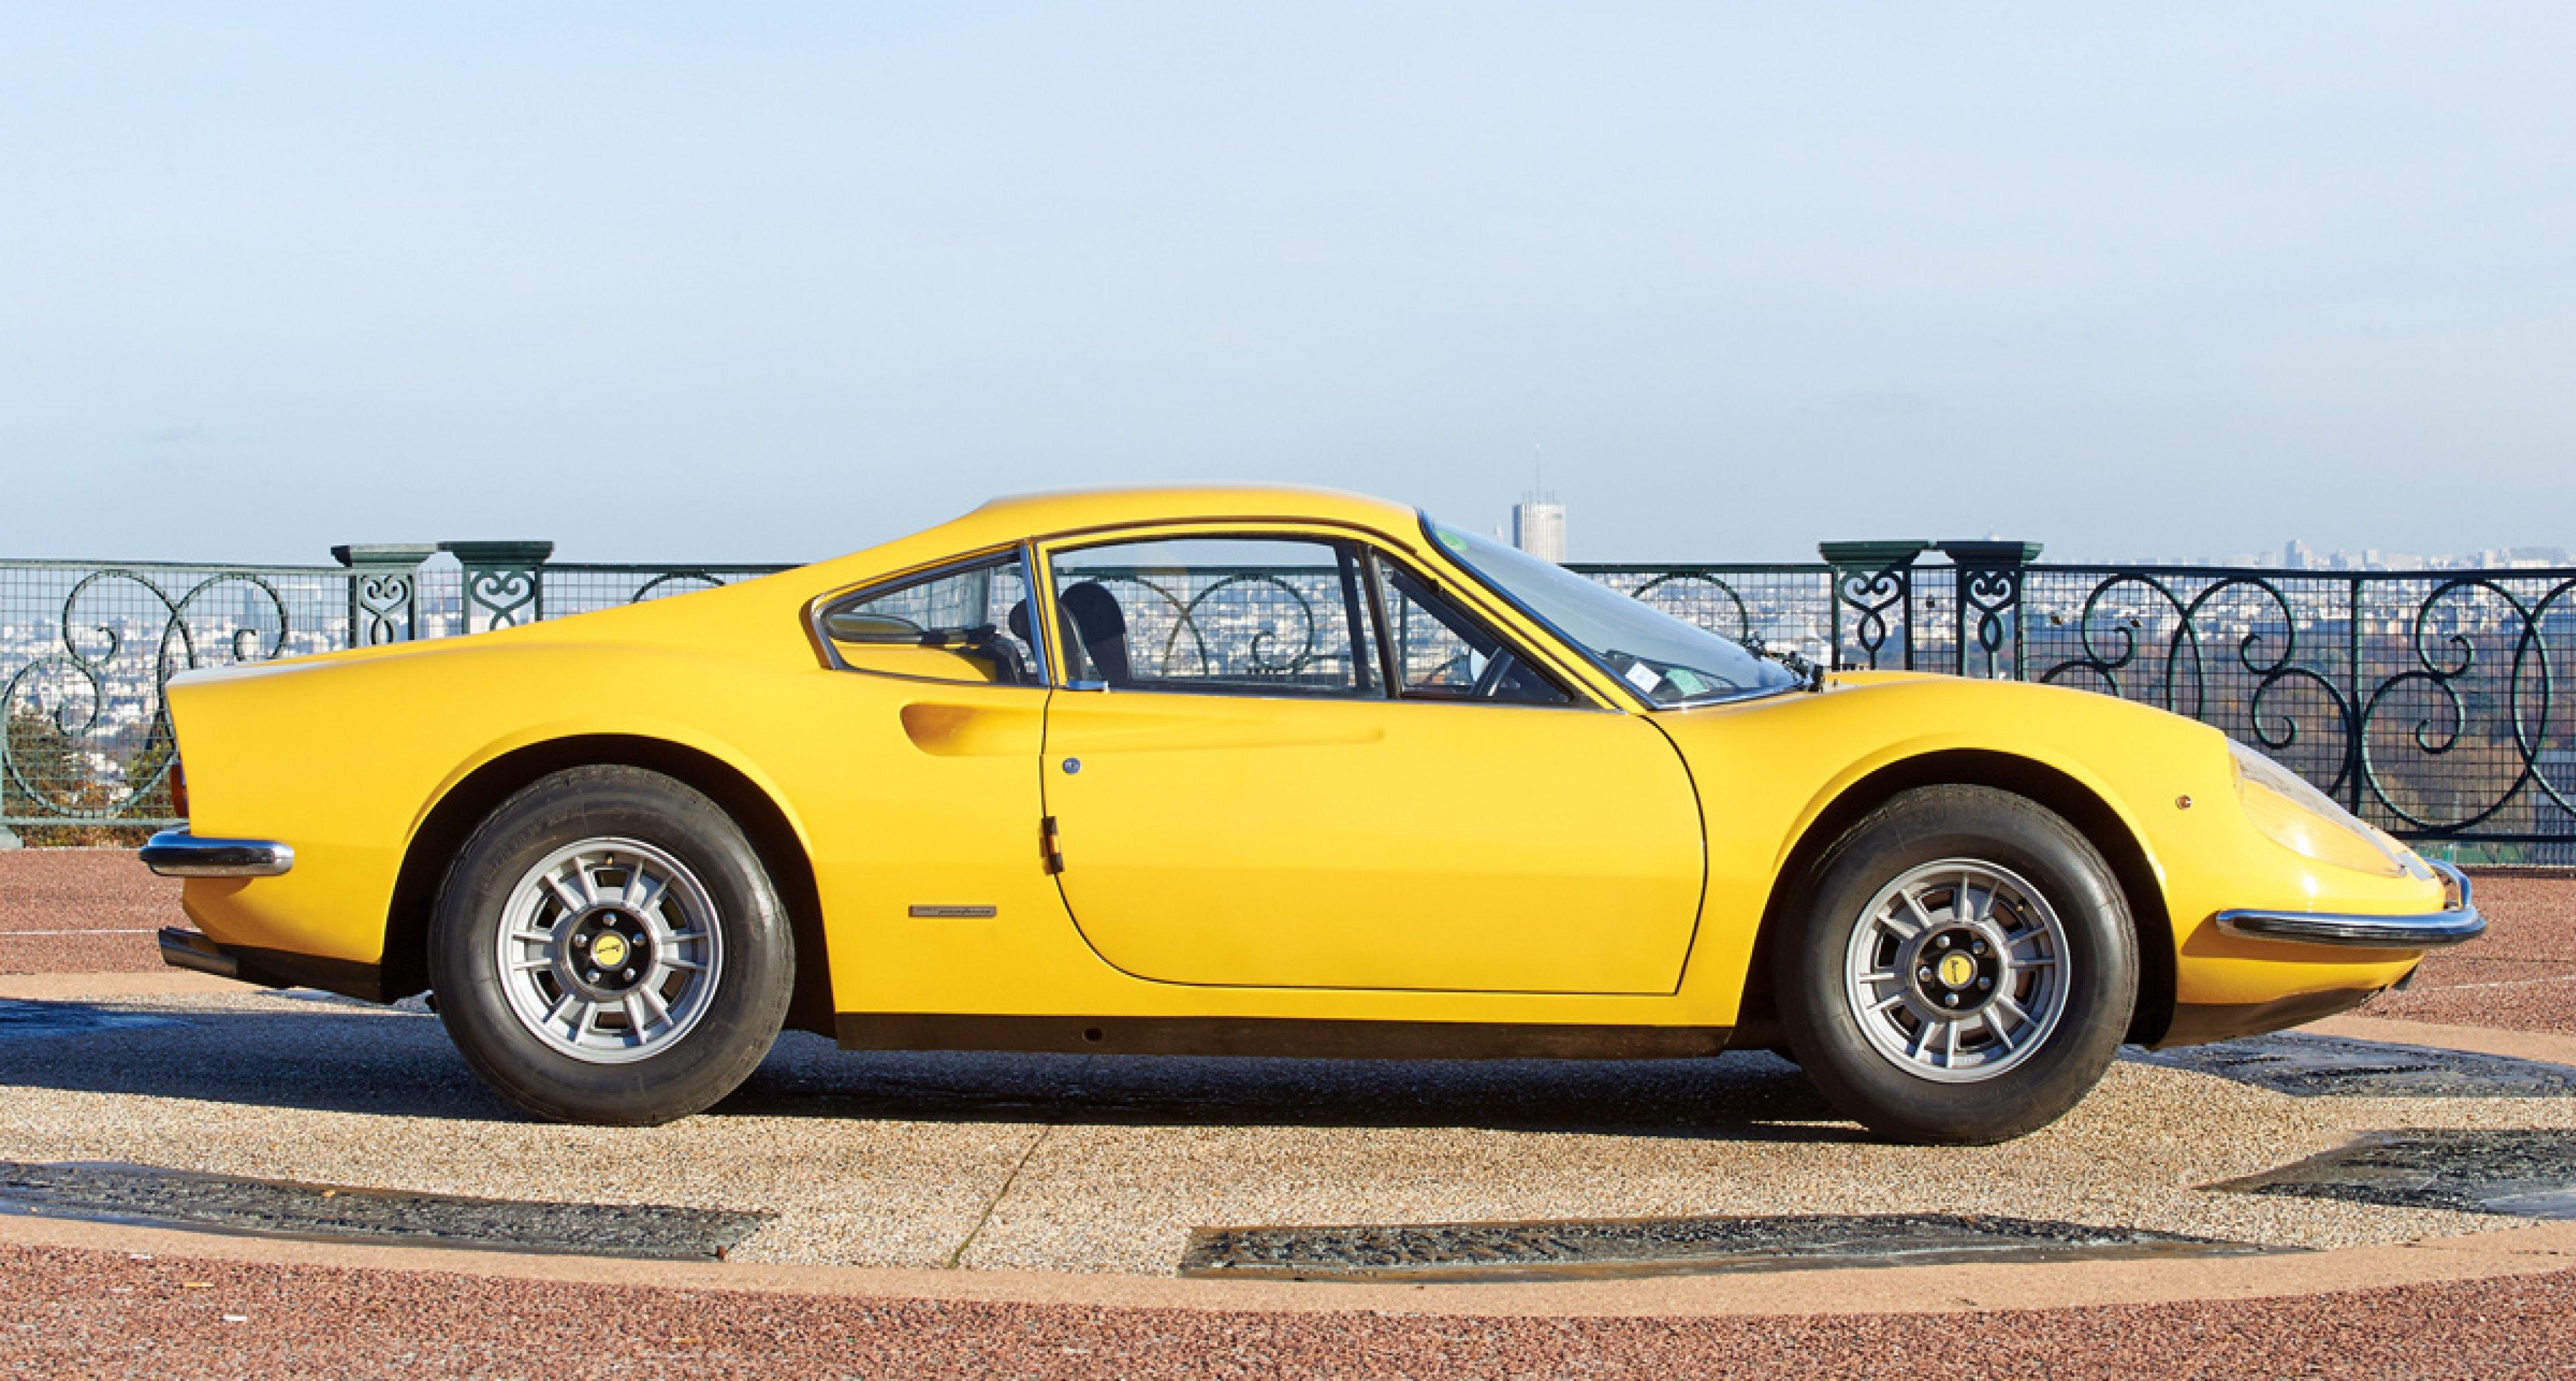 RM Auctions: 1971 Ferrari Dino 246 GT (Lot 21) / € 180.000 - 220.000